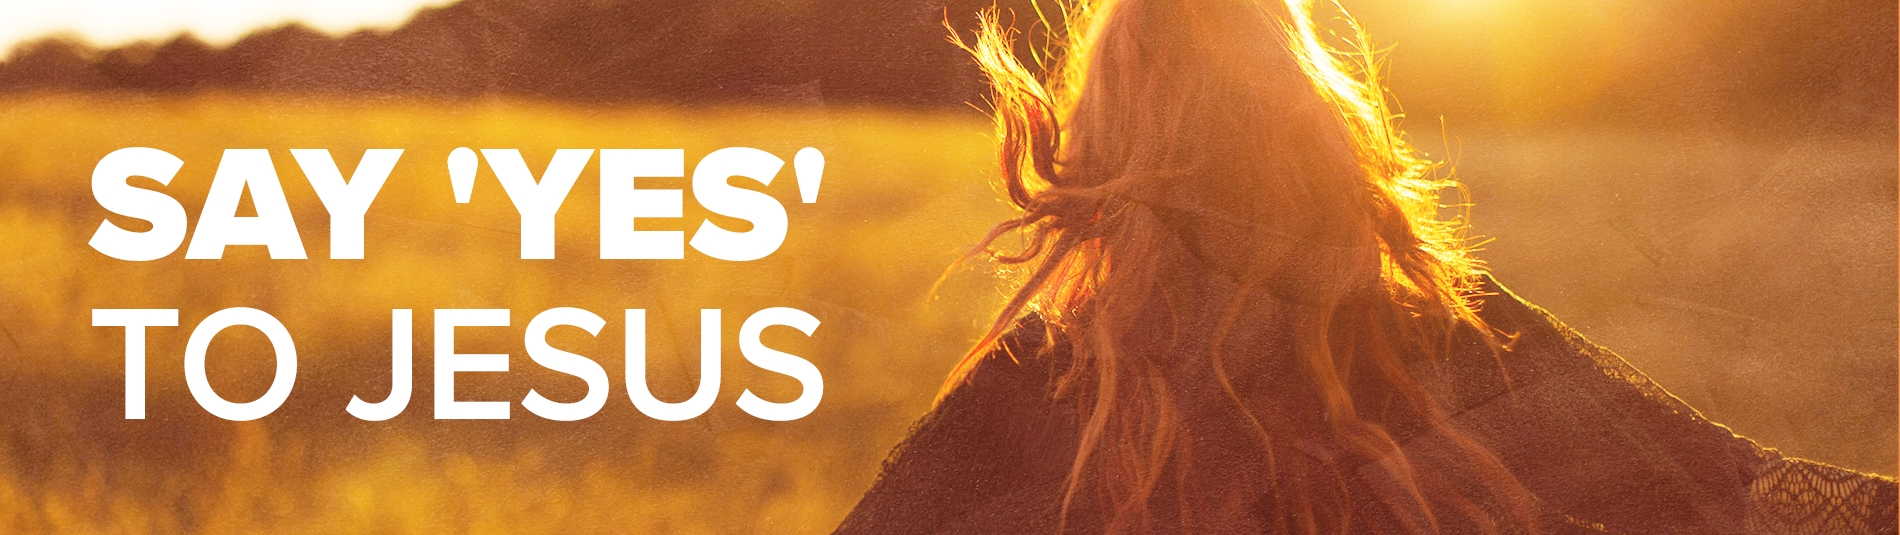 Say Yes to Jesus - Find out more